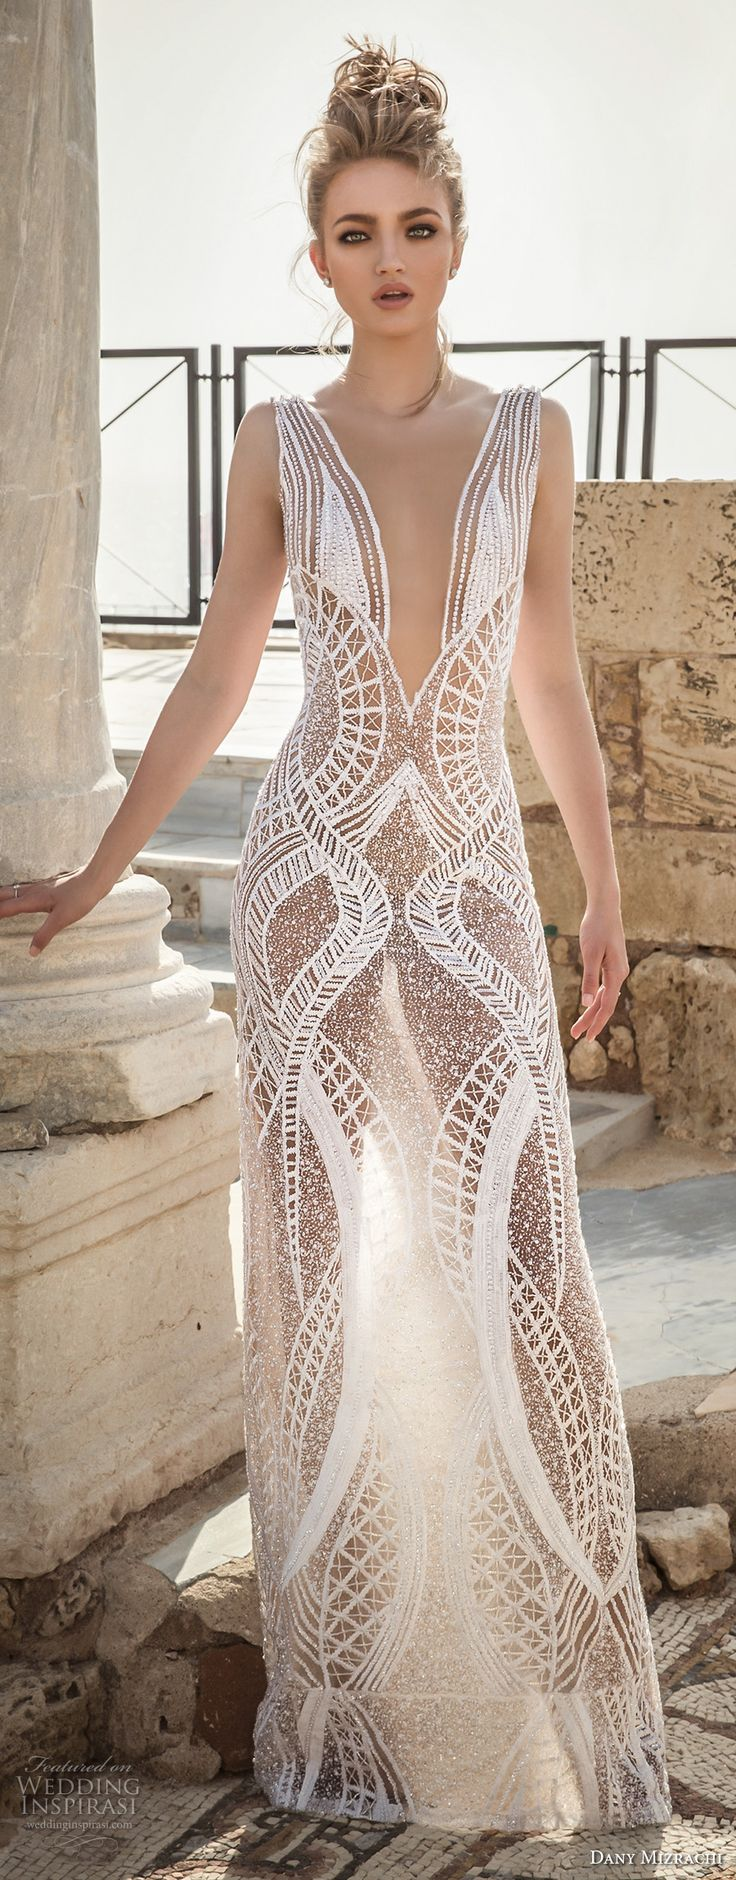 danny mizrachi 2018 bridal sleeveless deep plunging v neckline full embellishment geomatric pattern sexy column wedding dress (13) mv